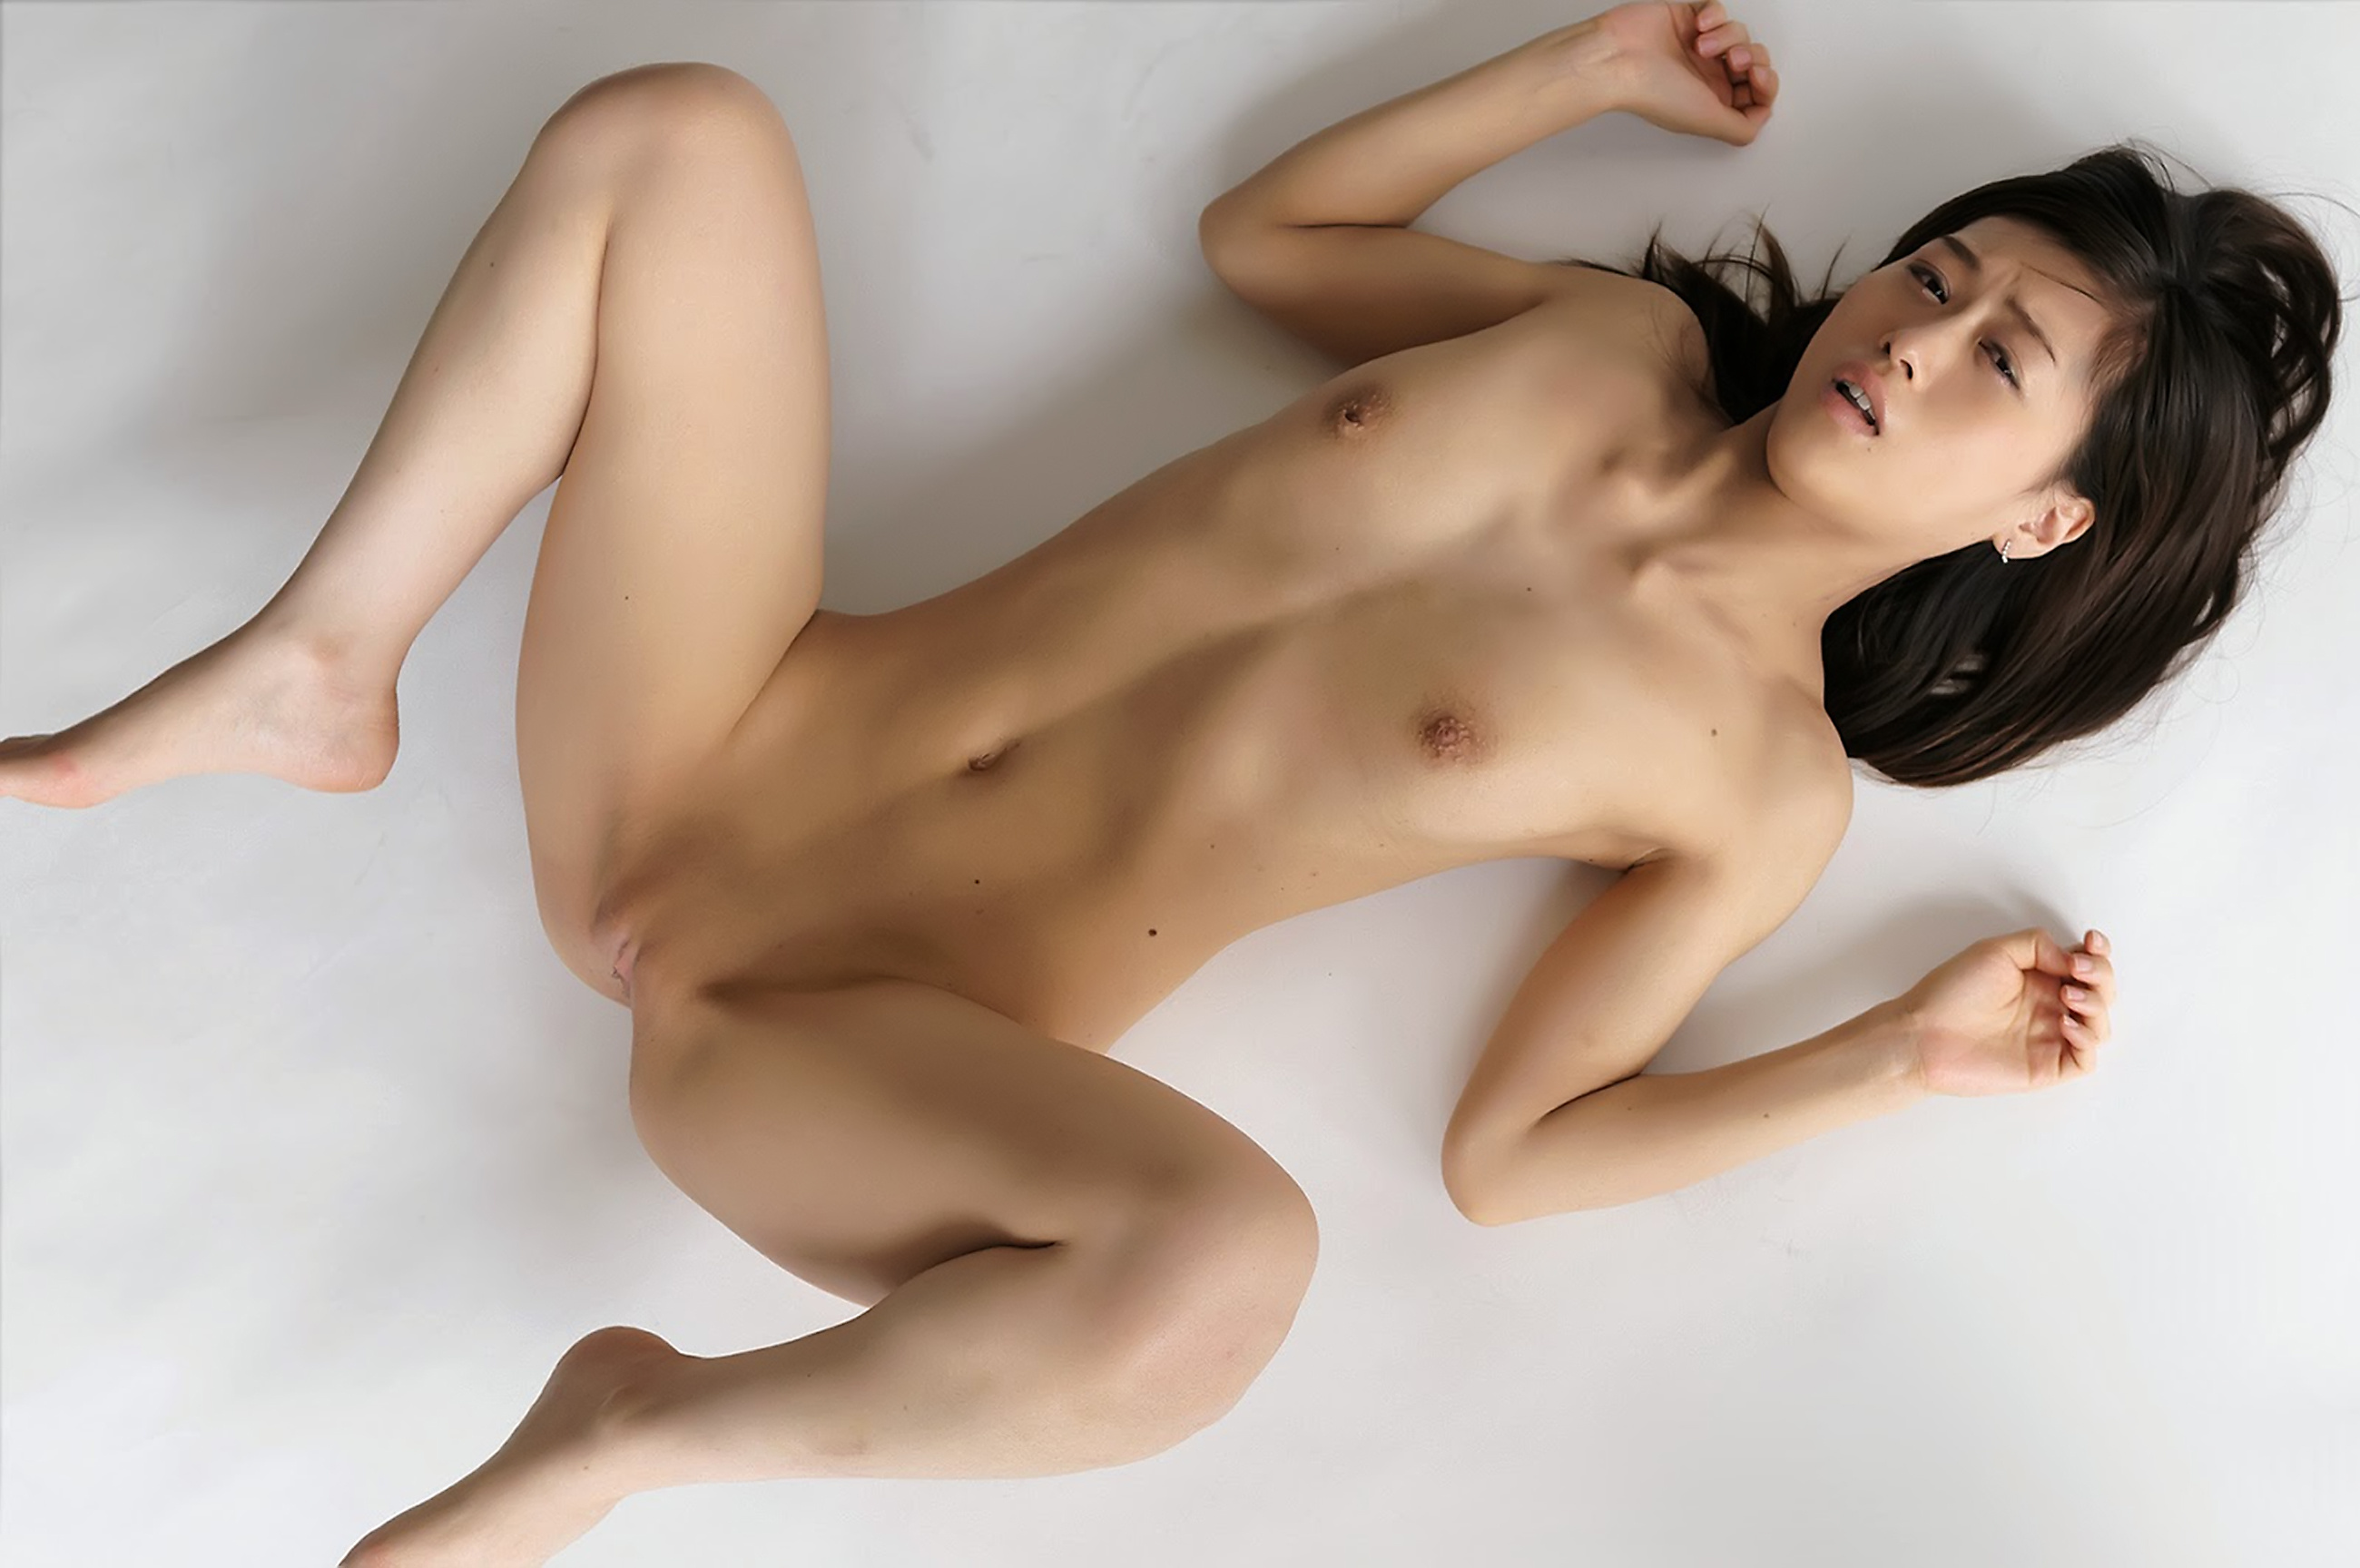 Japanese emo girl nude